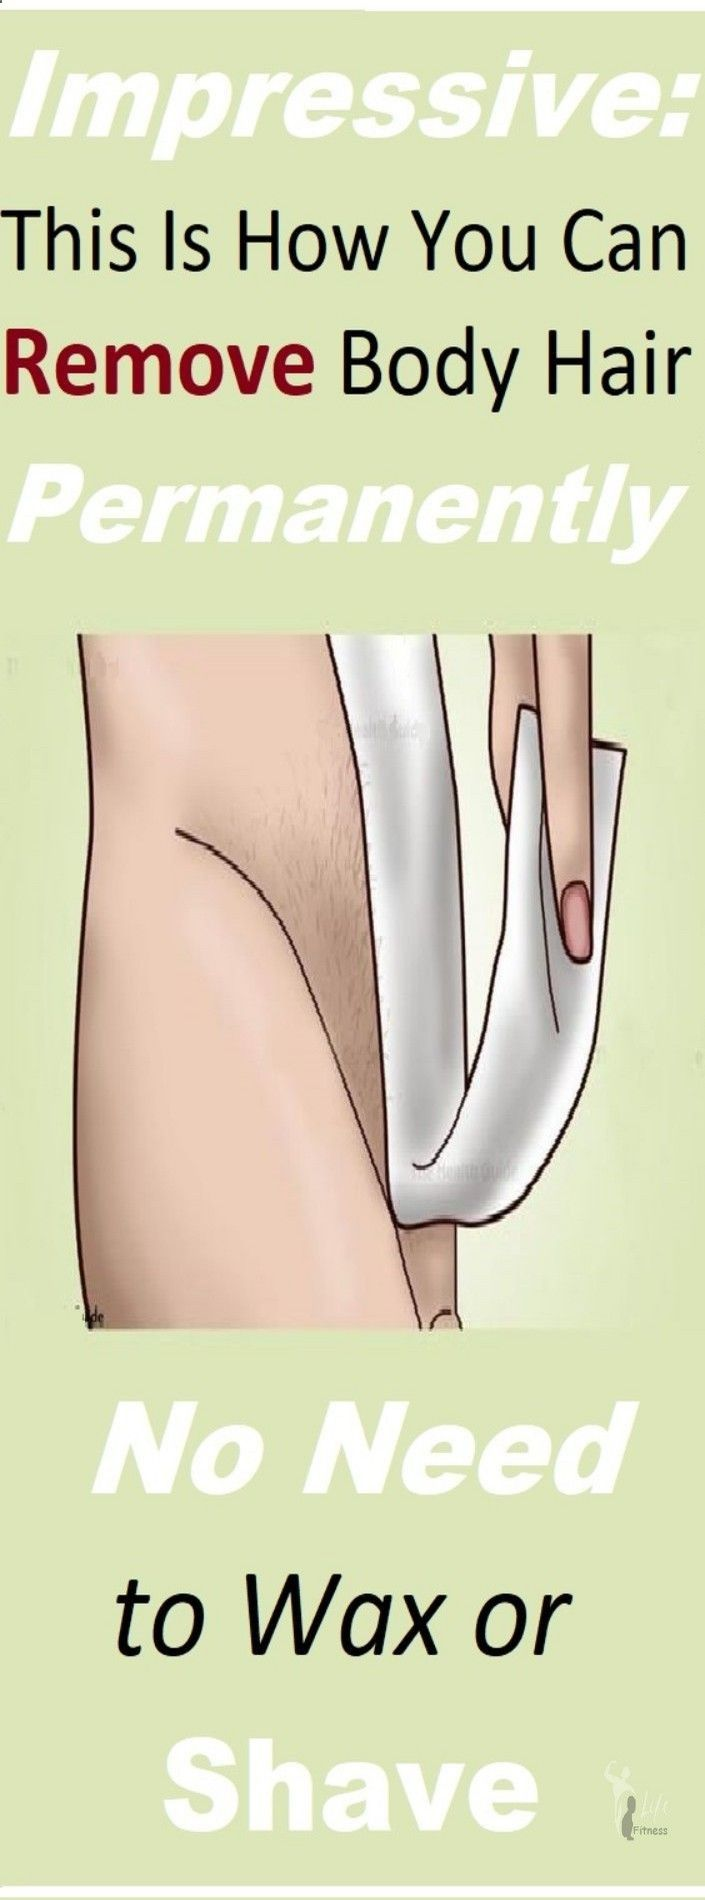 Although the most common ways to remove body hair are waxing or